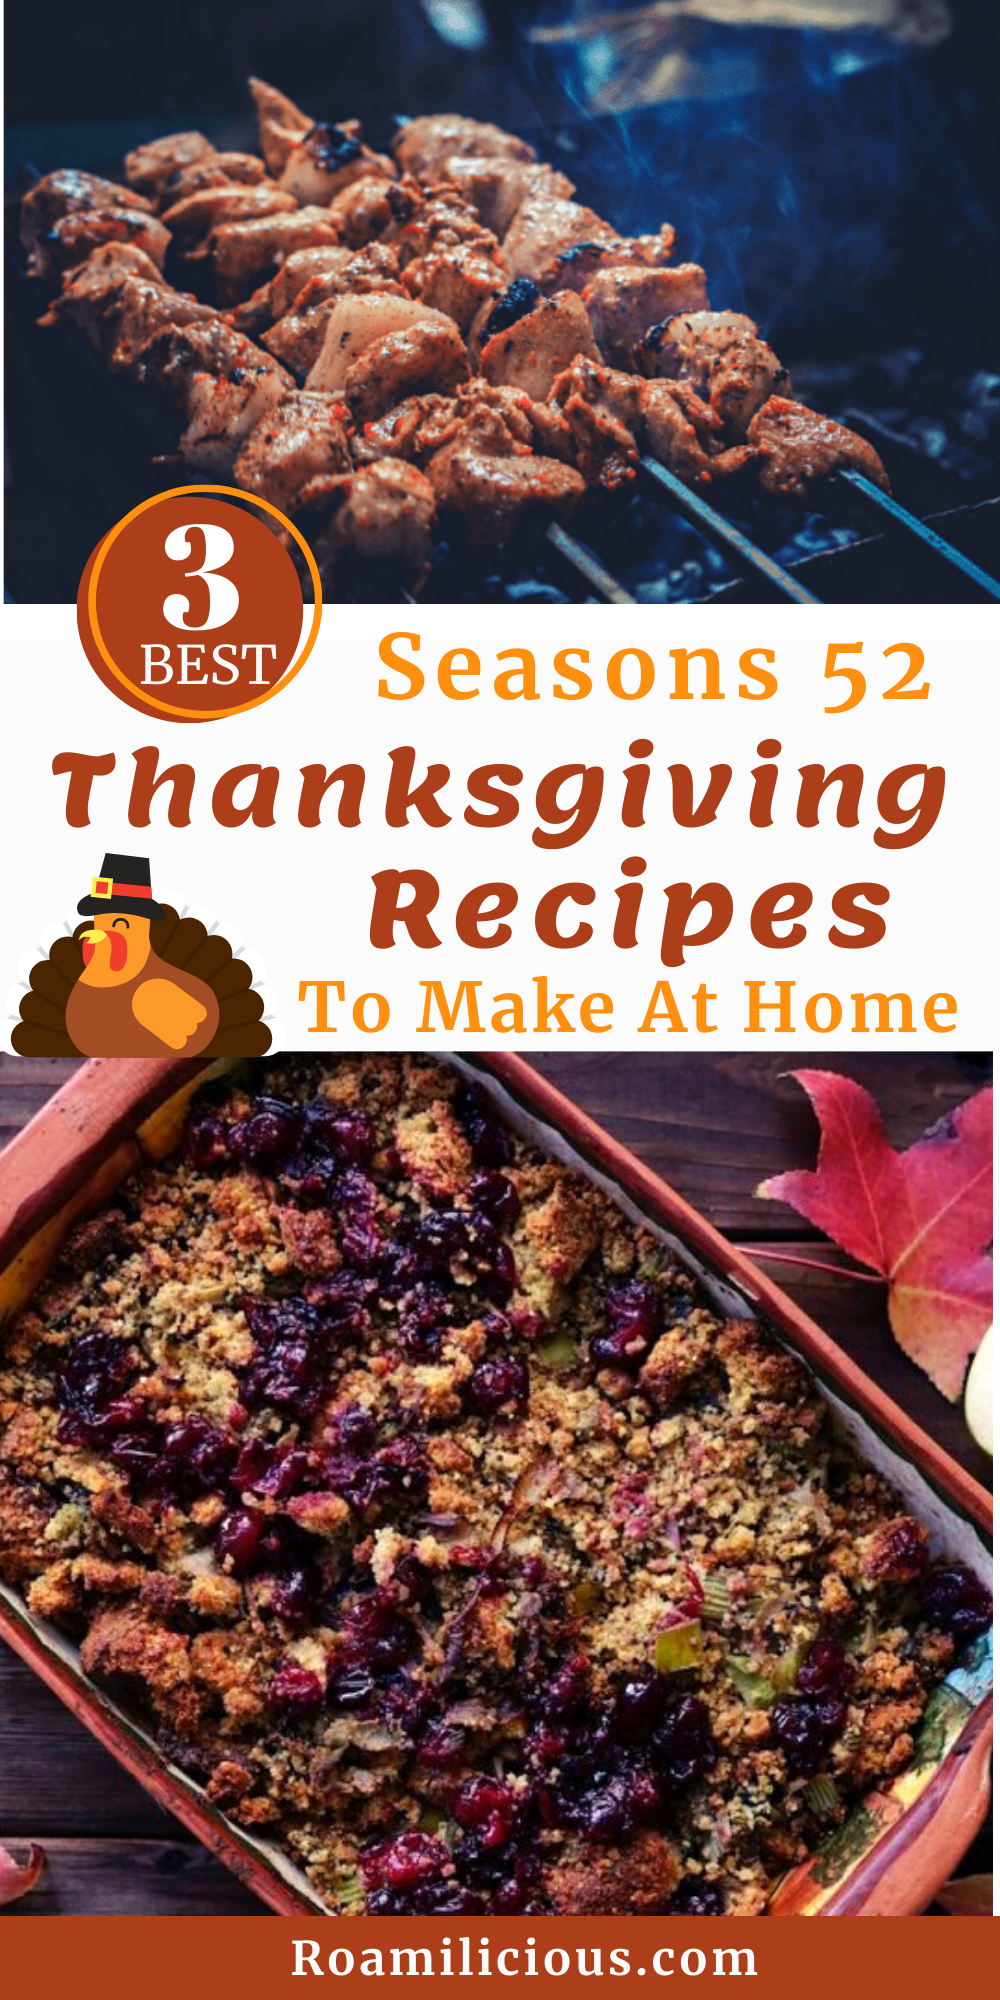 Seasons 52 shares their 3 best Thanksgiving recipes